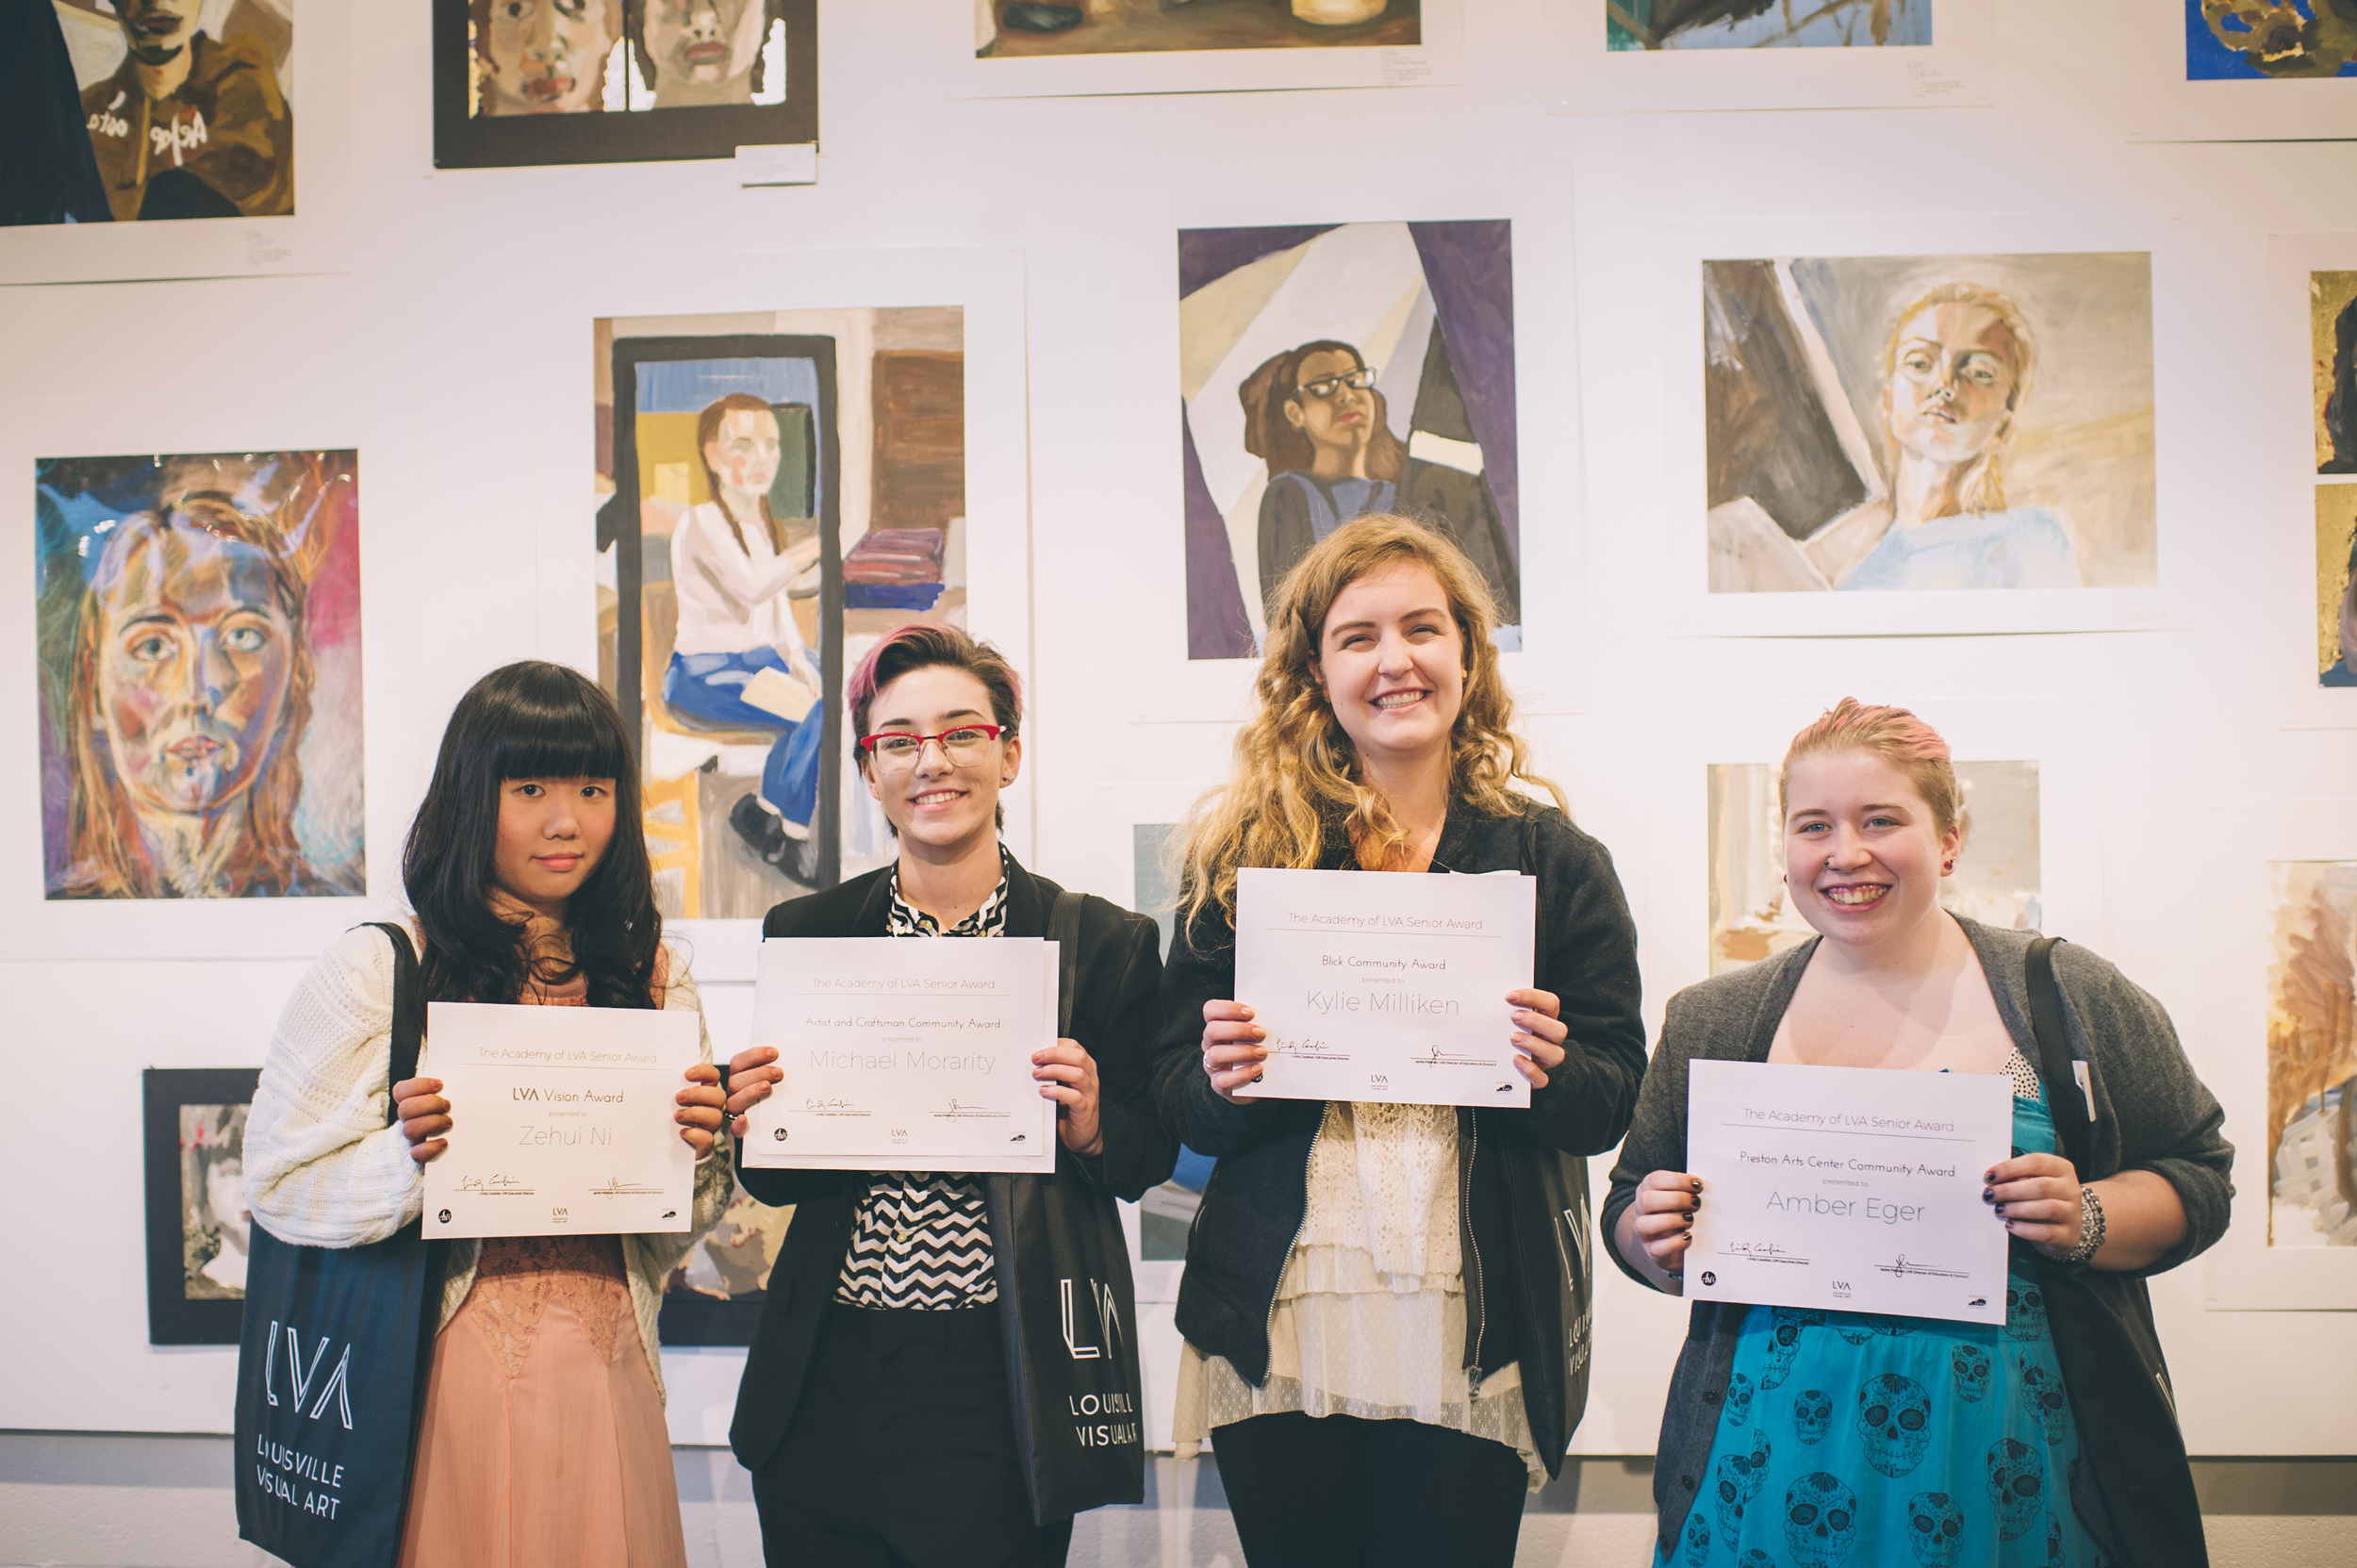 Congratulations to Zehui Ni for receiving the LVA Vision Award, Michael Morarity for receiving the Artist and Craftsman Community Award, Kylie Milliken for receiving the Blick Community Award, and Amber Eger for receiving the Preston Arts Center Community Award! These seniors have shown active and passionate involvement in CFAC and The Academy, exhibit great determination and drive, and their creative ability is continually improving. We are so proud of each of you!